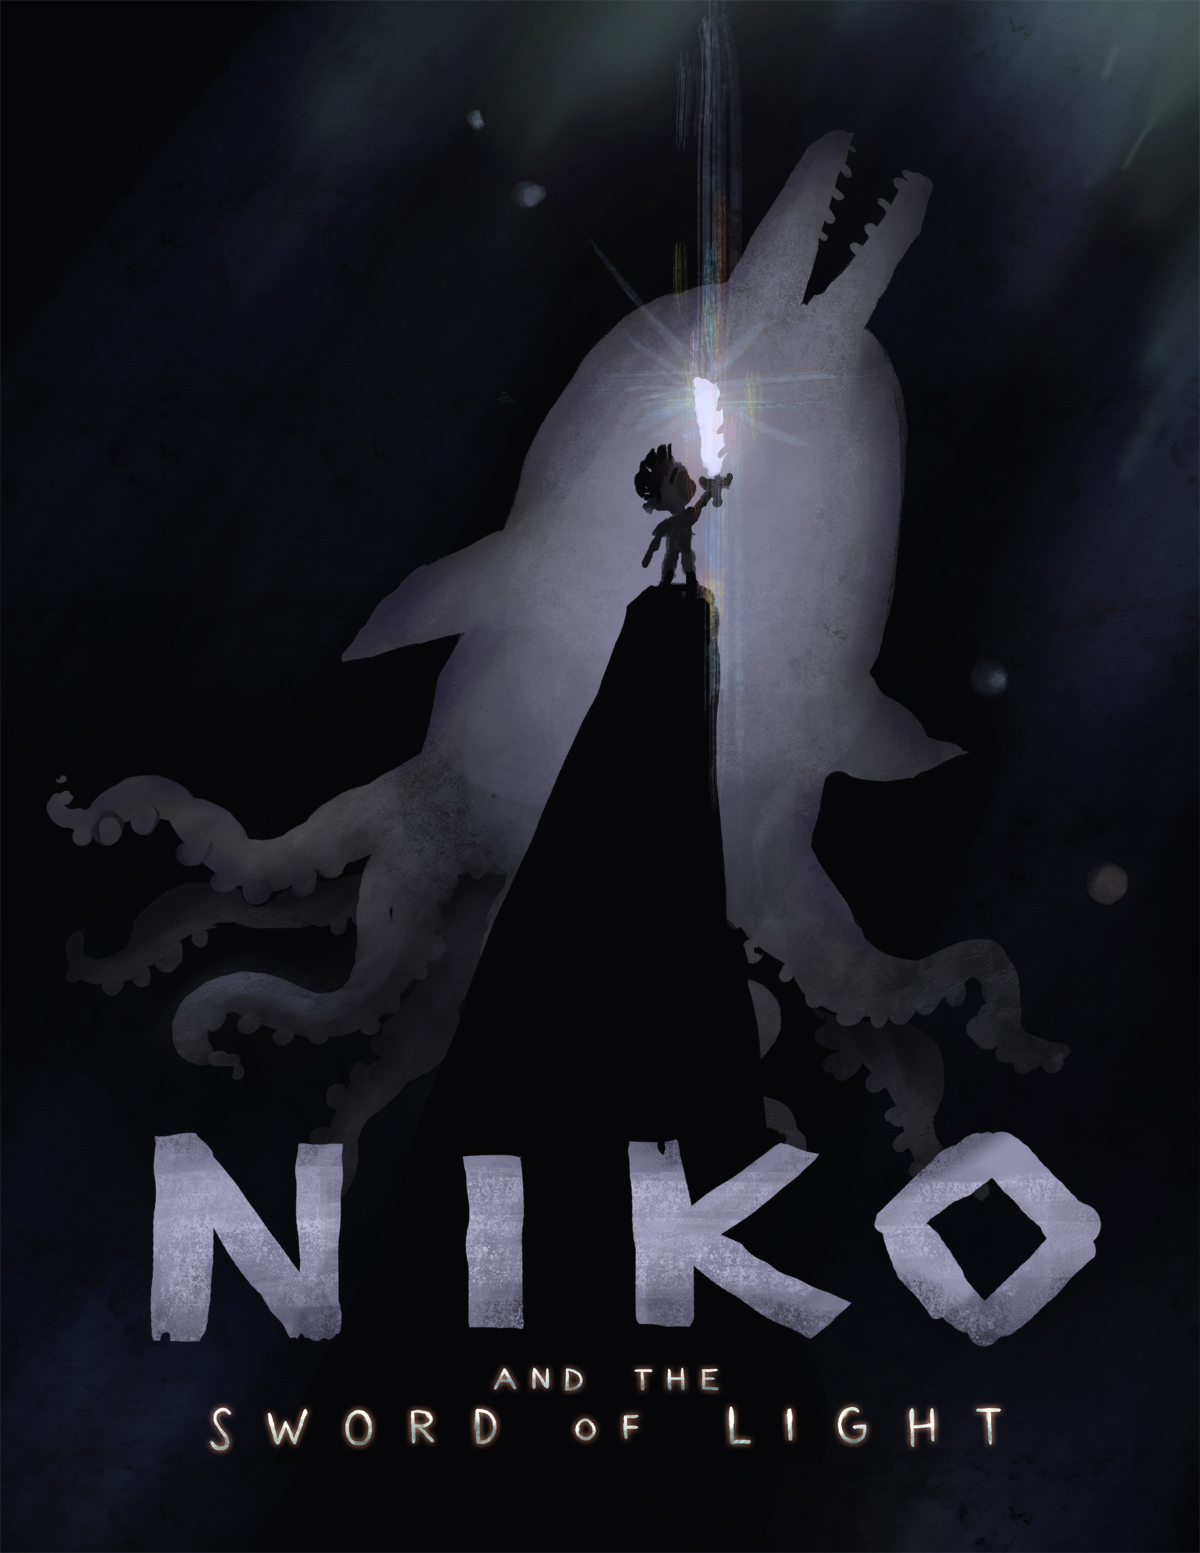 Niko.and.the.Sword.of.Light.S01.2160p.Amazon.WEBRip.DD5.1.x264-TrollUHD